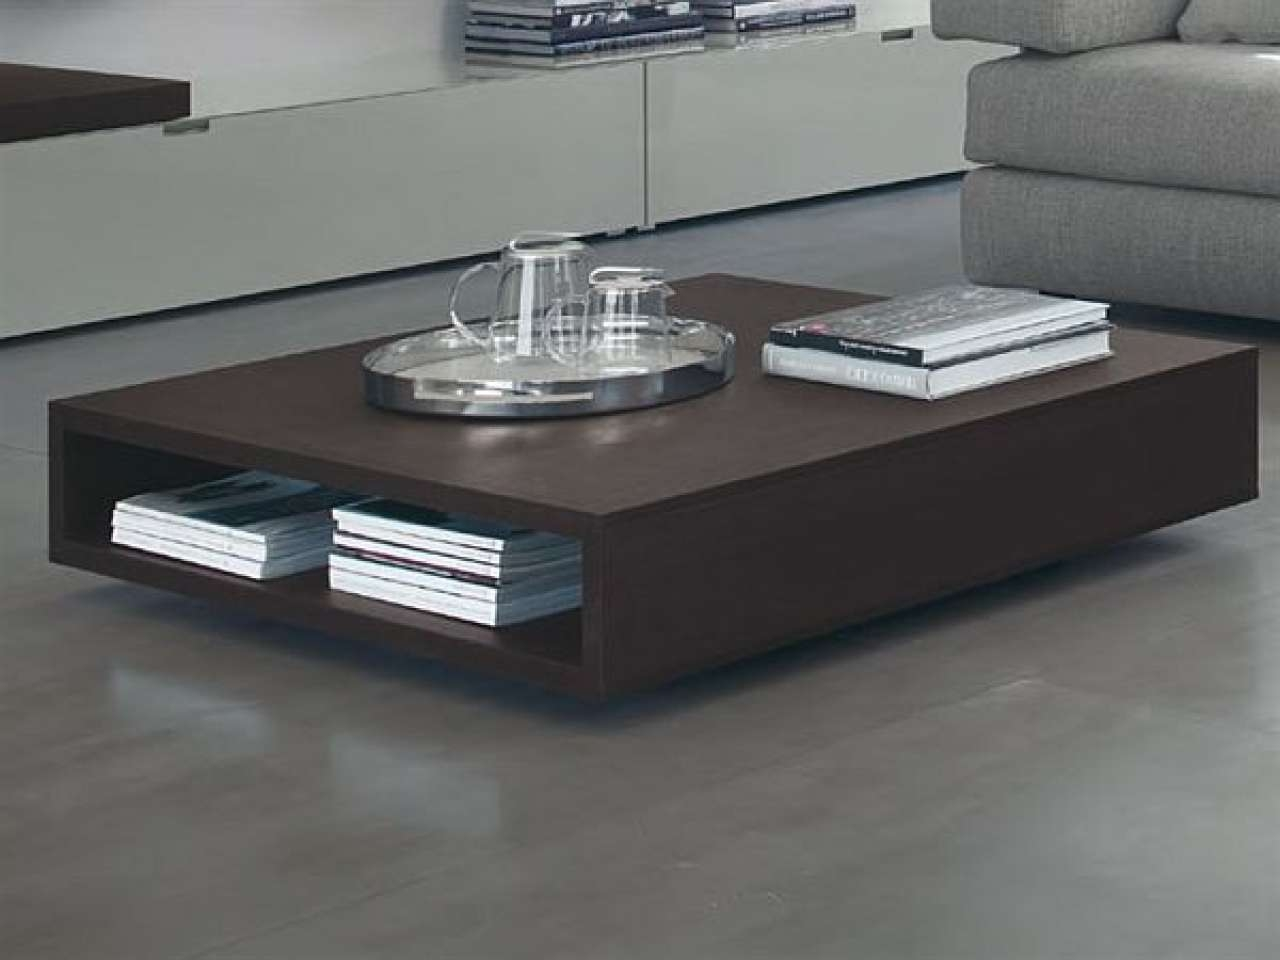 Low Contemporary Coffee Tables With Storage : Ethnic Low Pertaining To Famous Low Wooden Coffee Tables (View 12 of 20)